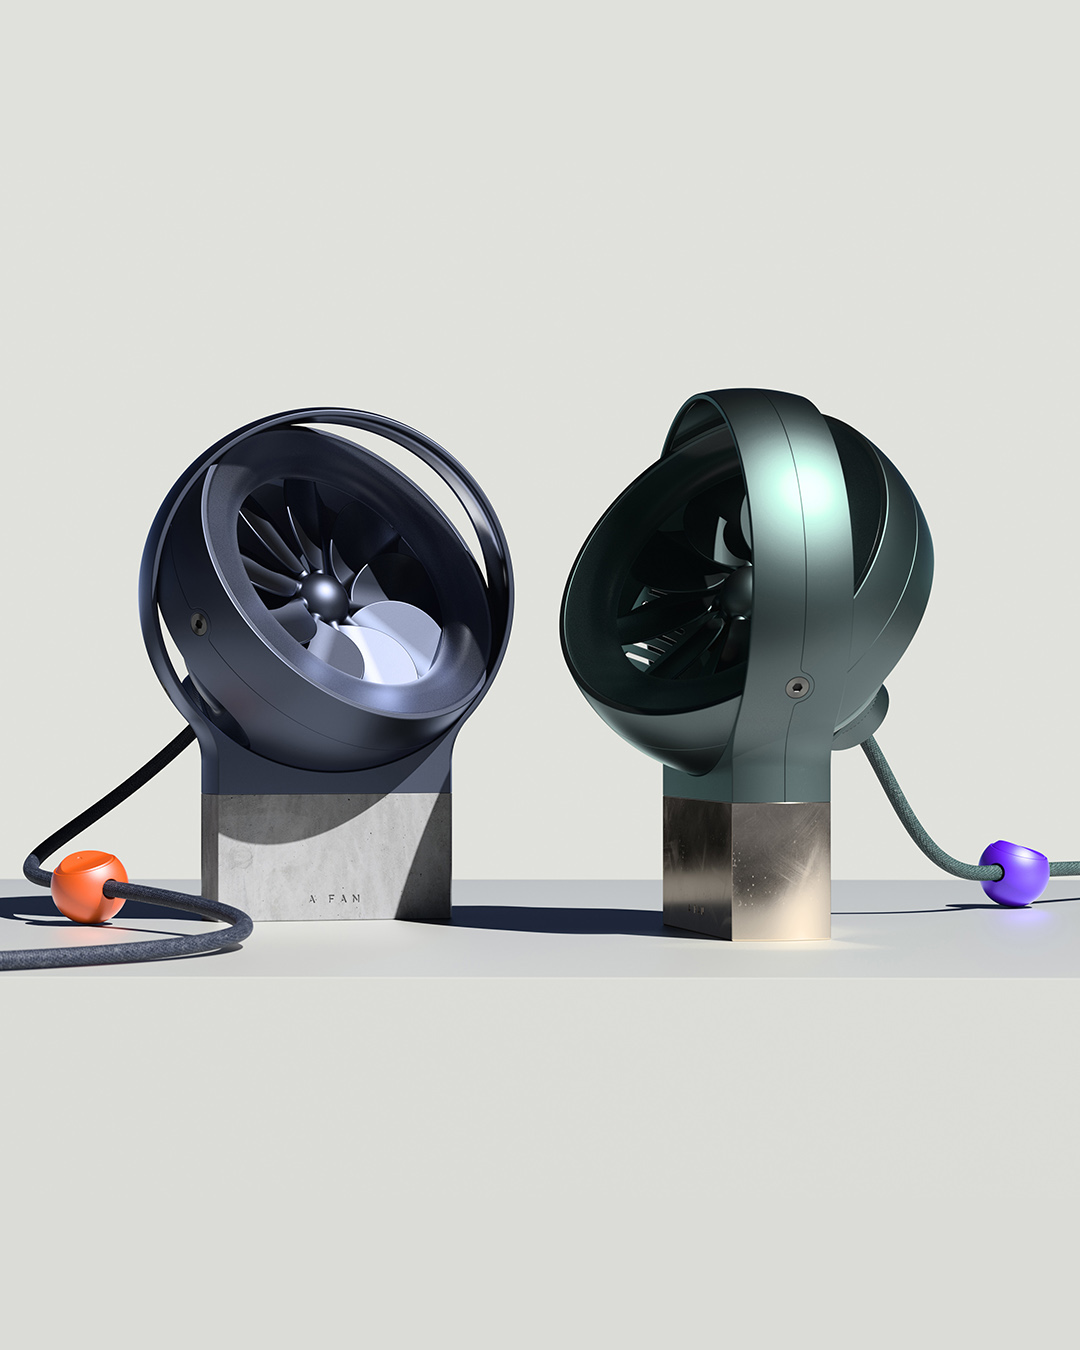 fan desk fan air cool chill product industrial design  design product design  blowingwithcs